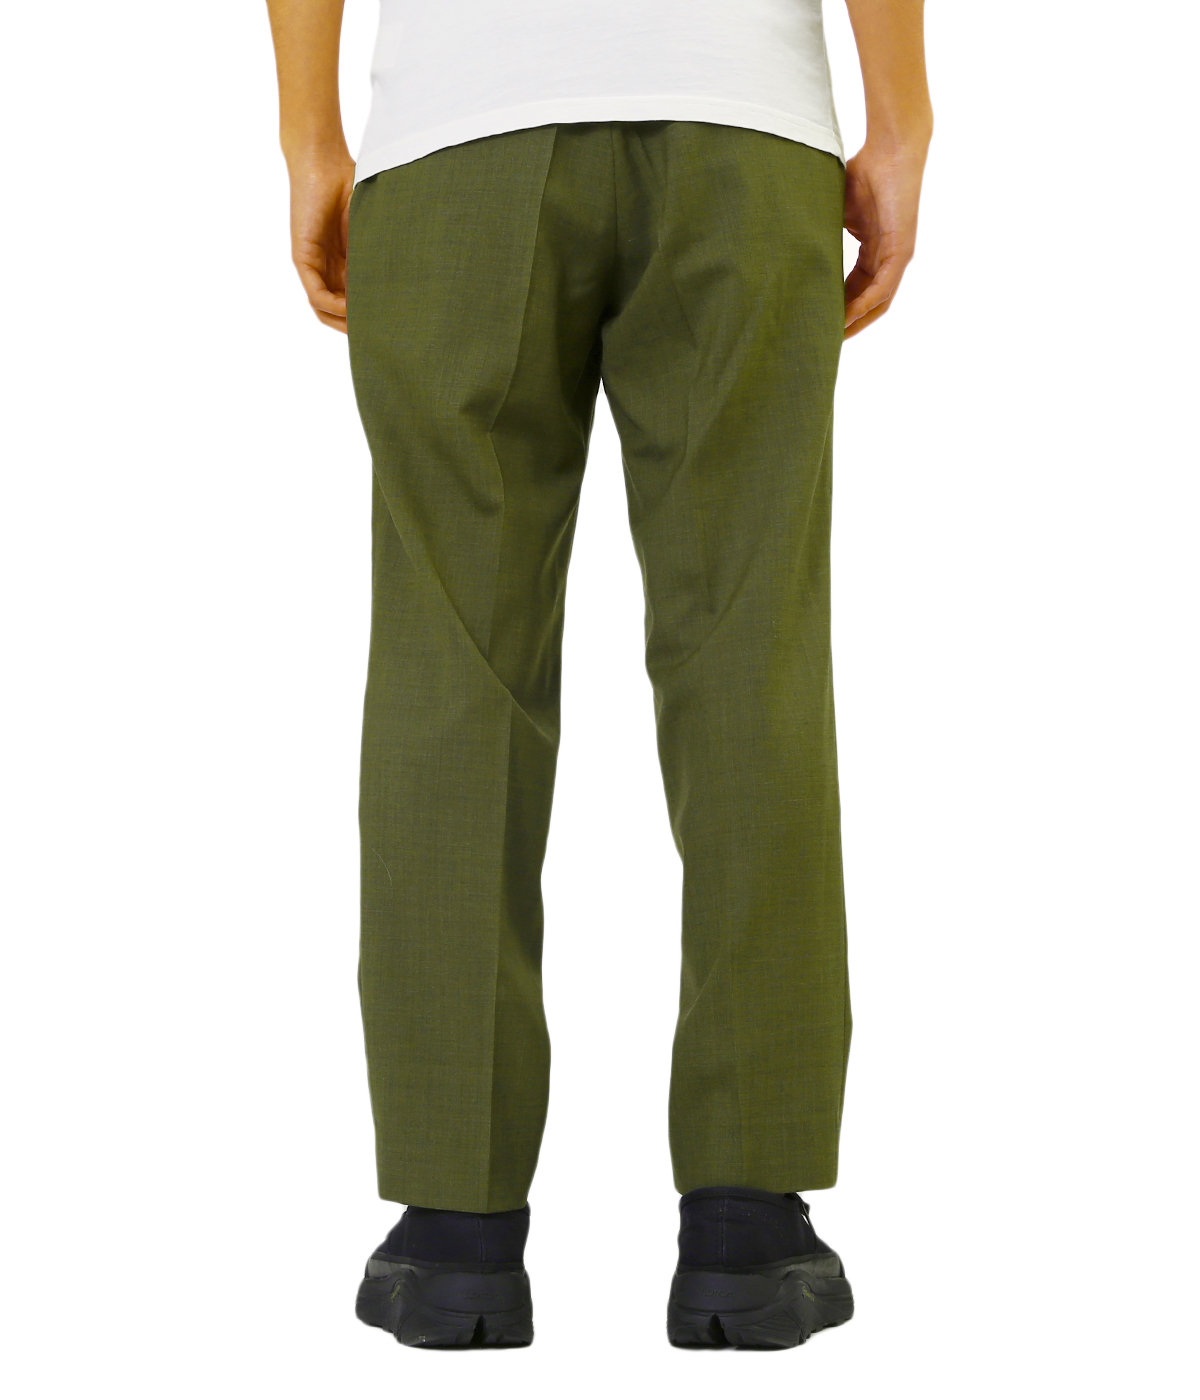 PEGTOP EASY TROUSERS -SUPER 120s WOOL TOROPICAL-